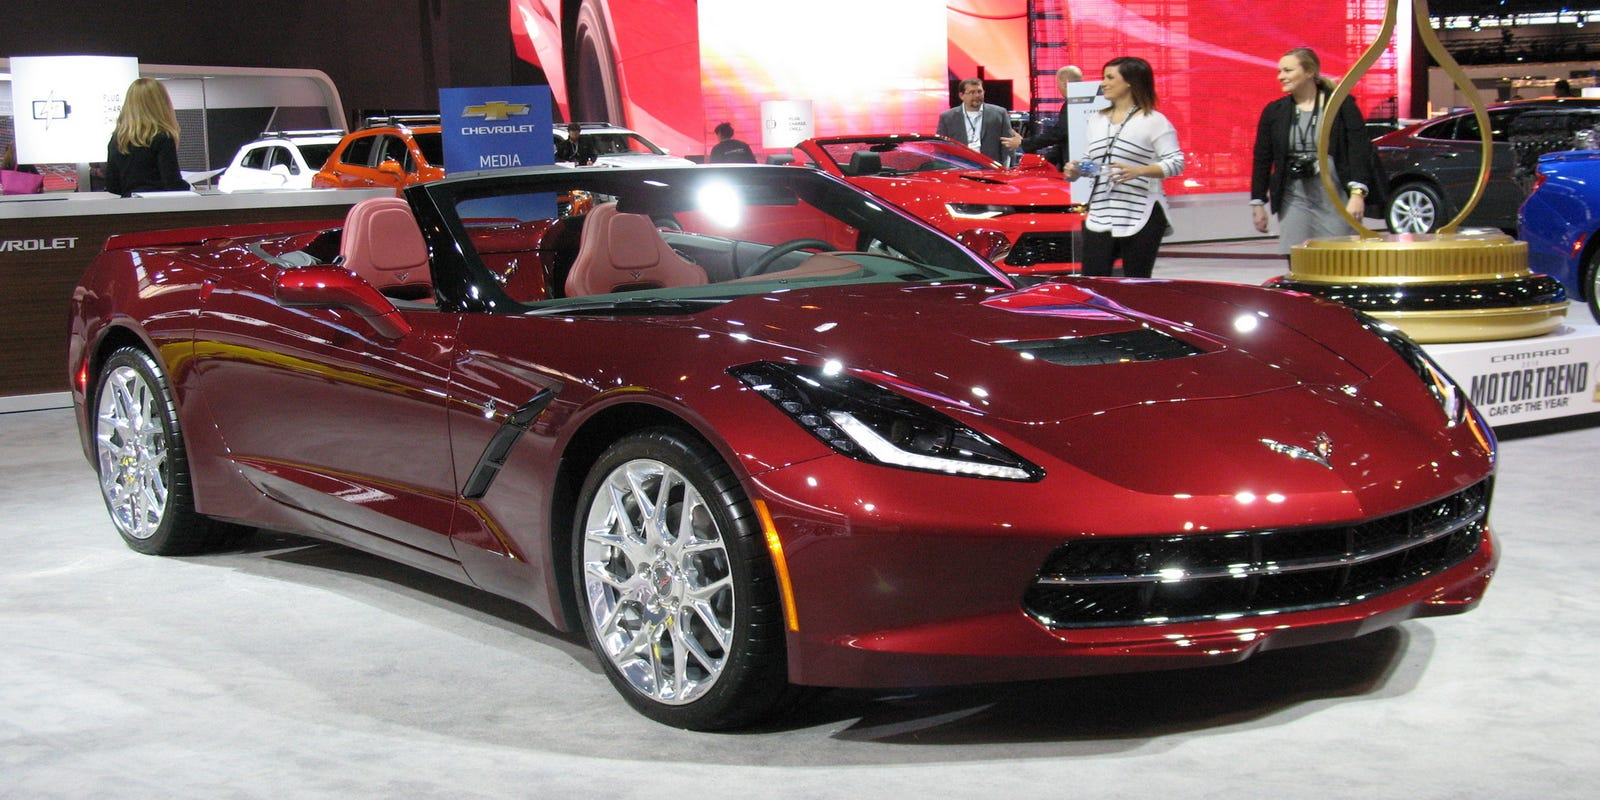 2017 Chevrolet Corvette Stingray Convertible Is A Purist Model